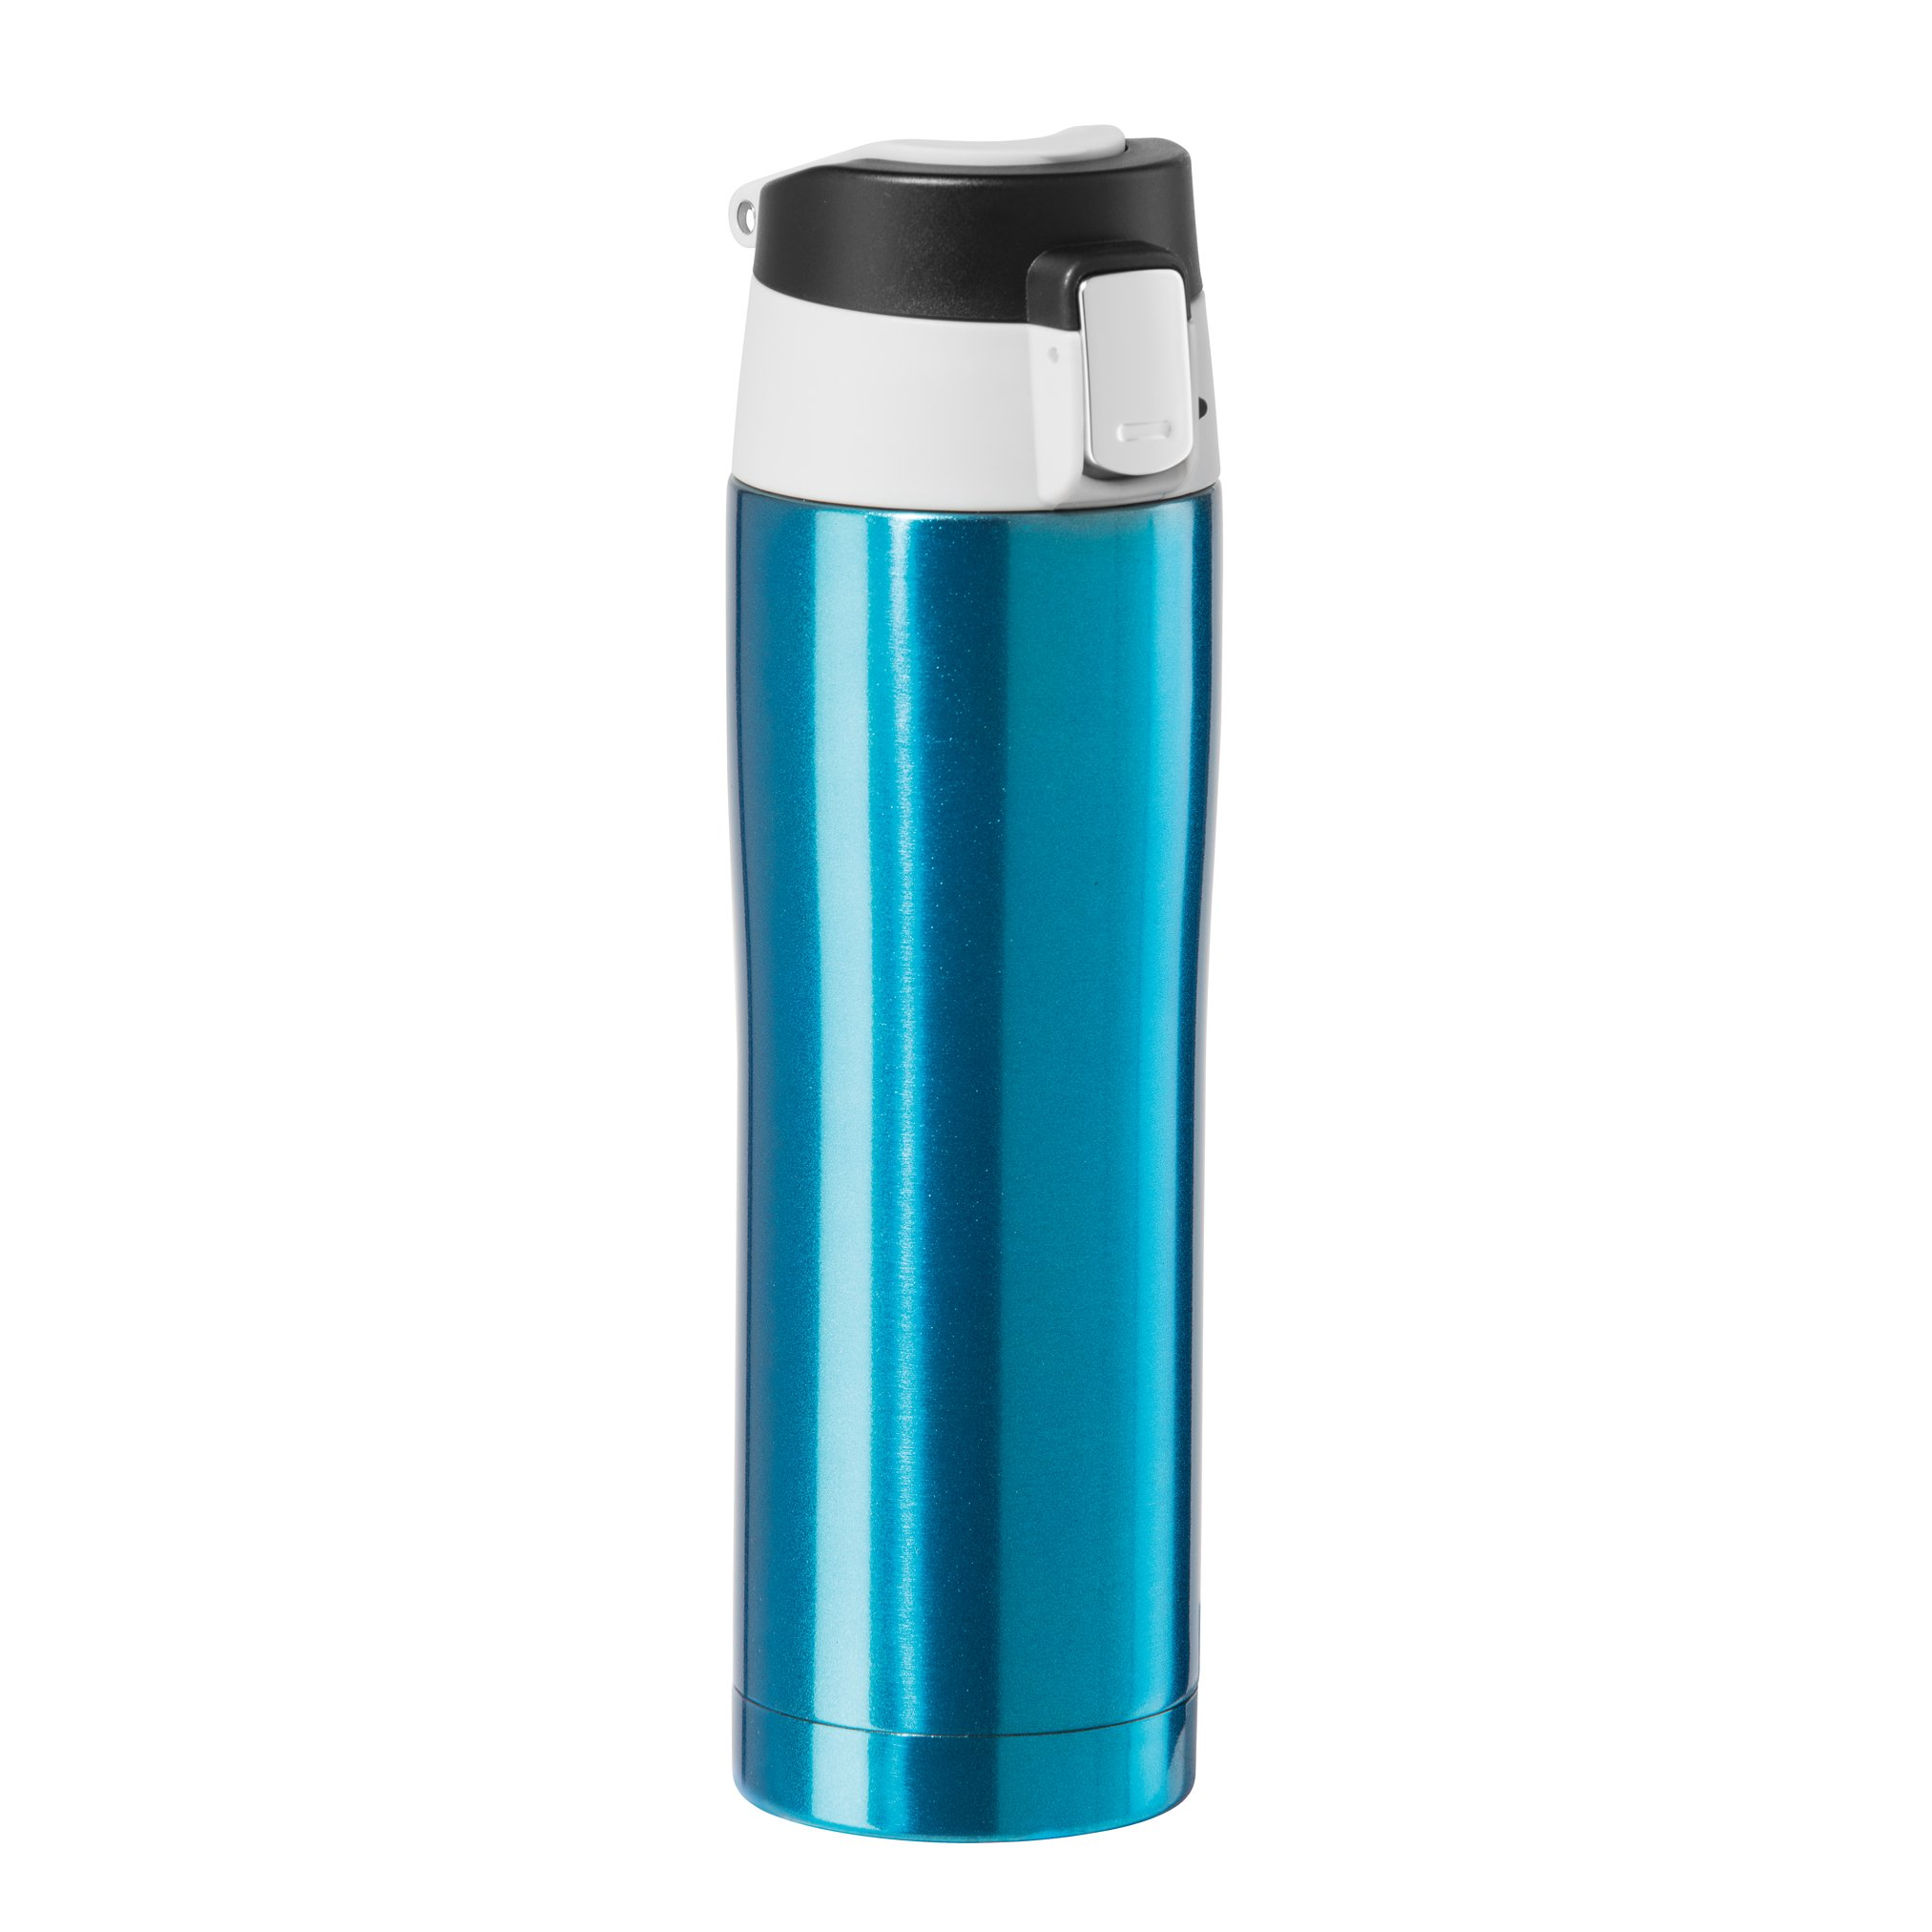 Oggi 8078.5 Double Wall Vacuum Sealed Stainless Steel Travel Mug with Flip-Open Locking Lid (0.5 Lt./16 Oz.)-Blue